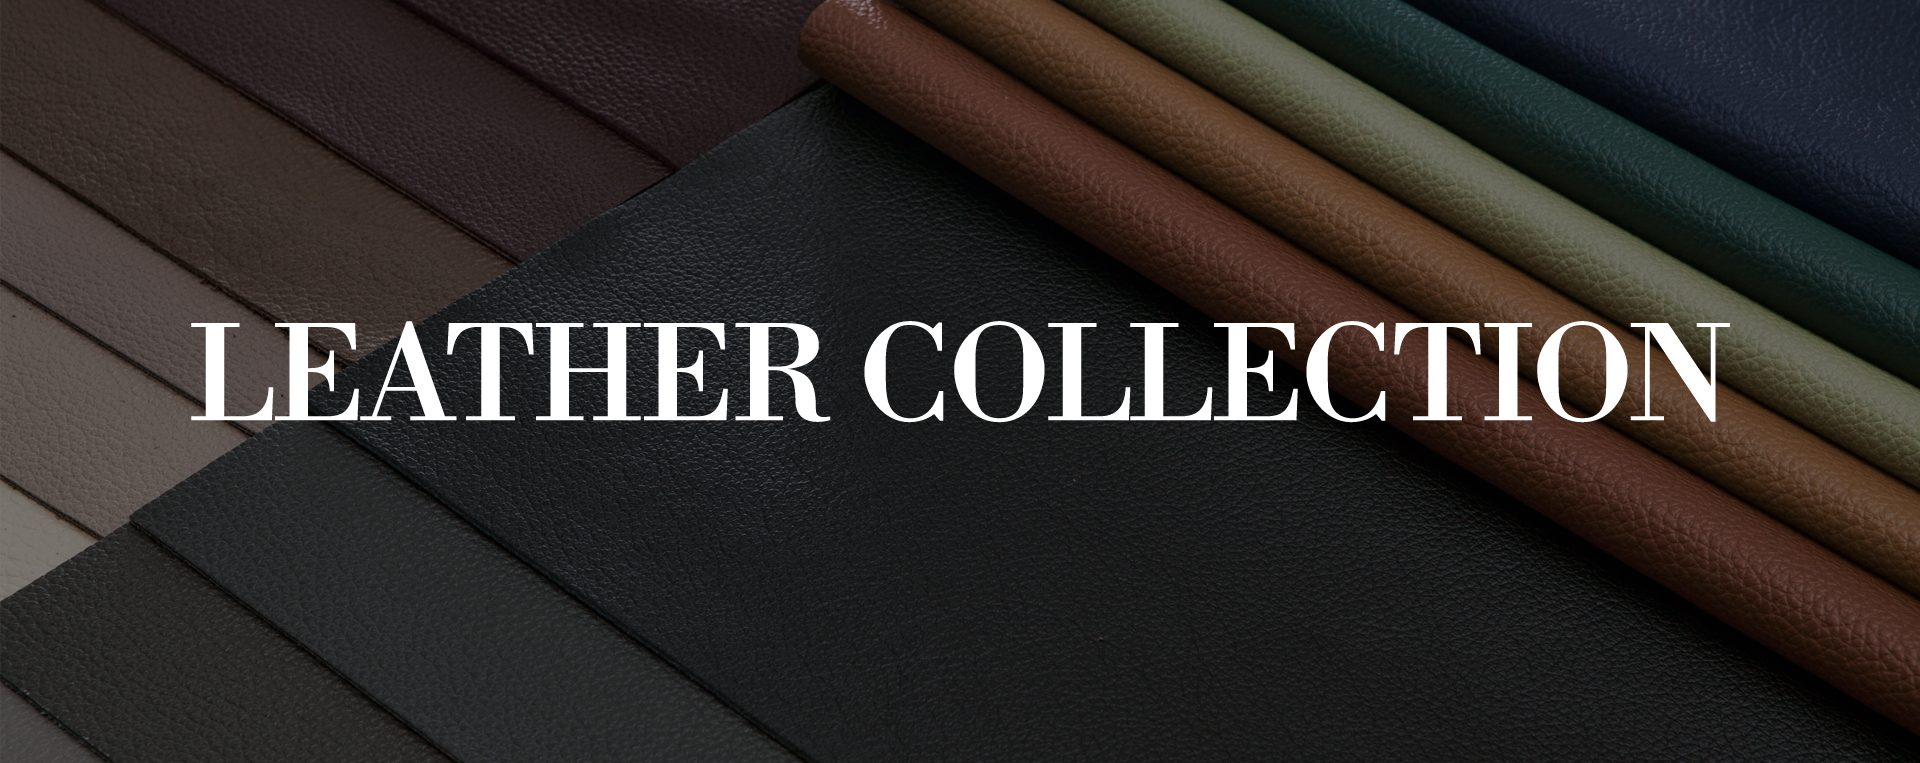 Leather Collection